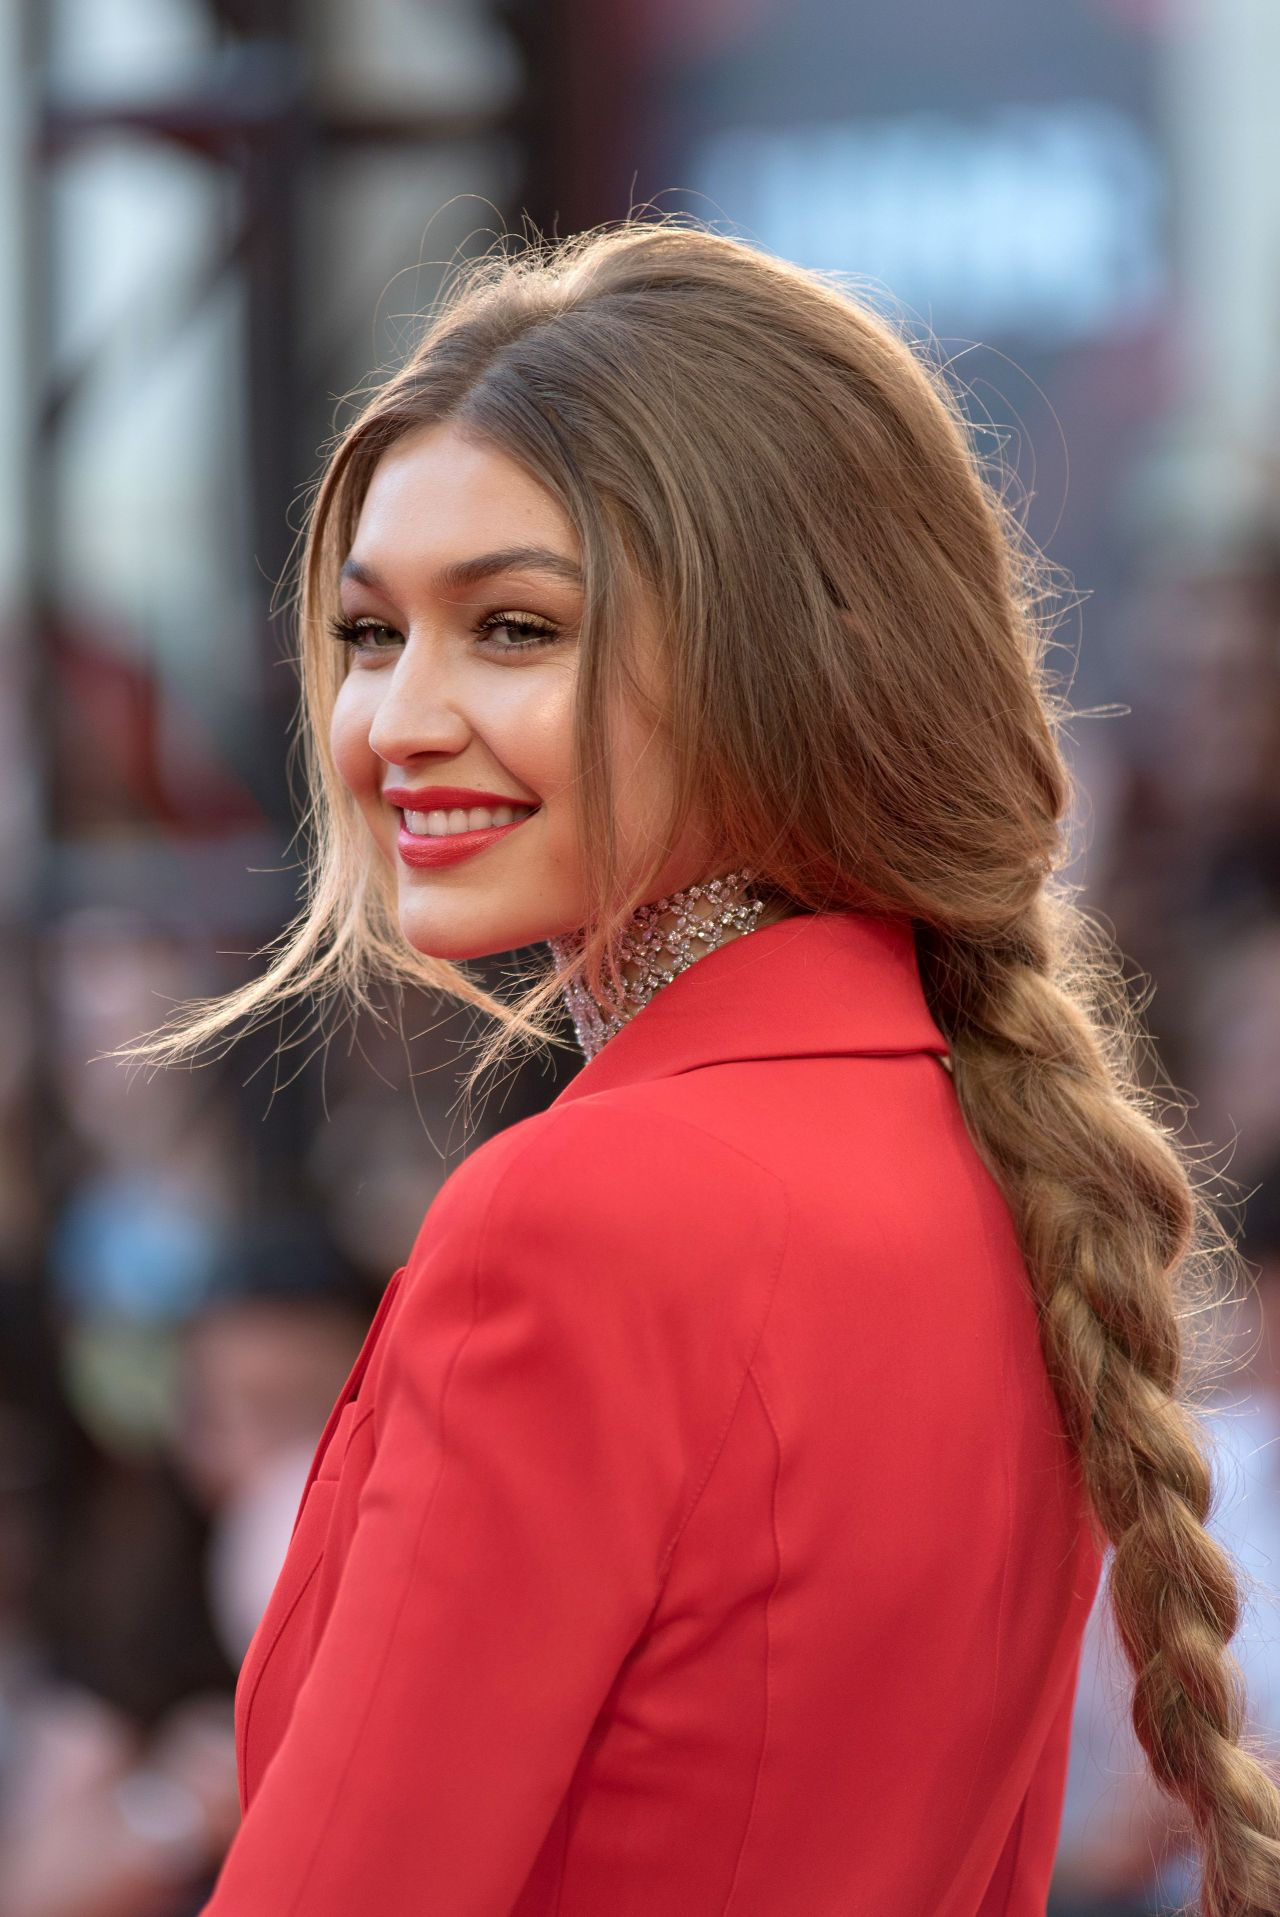 gigi hadid - photo #6